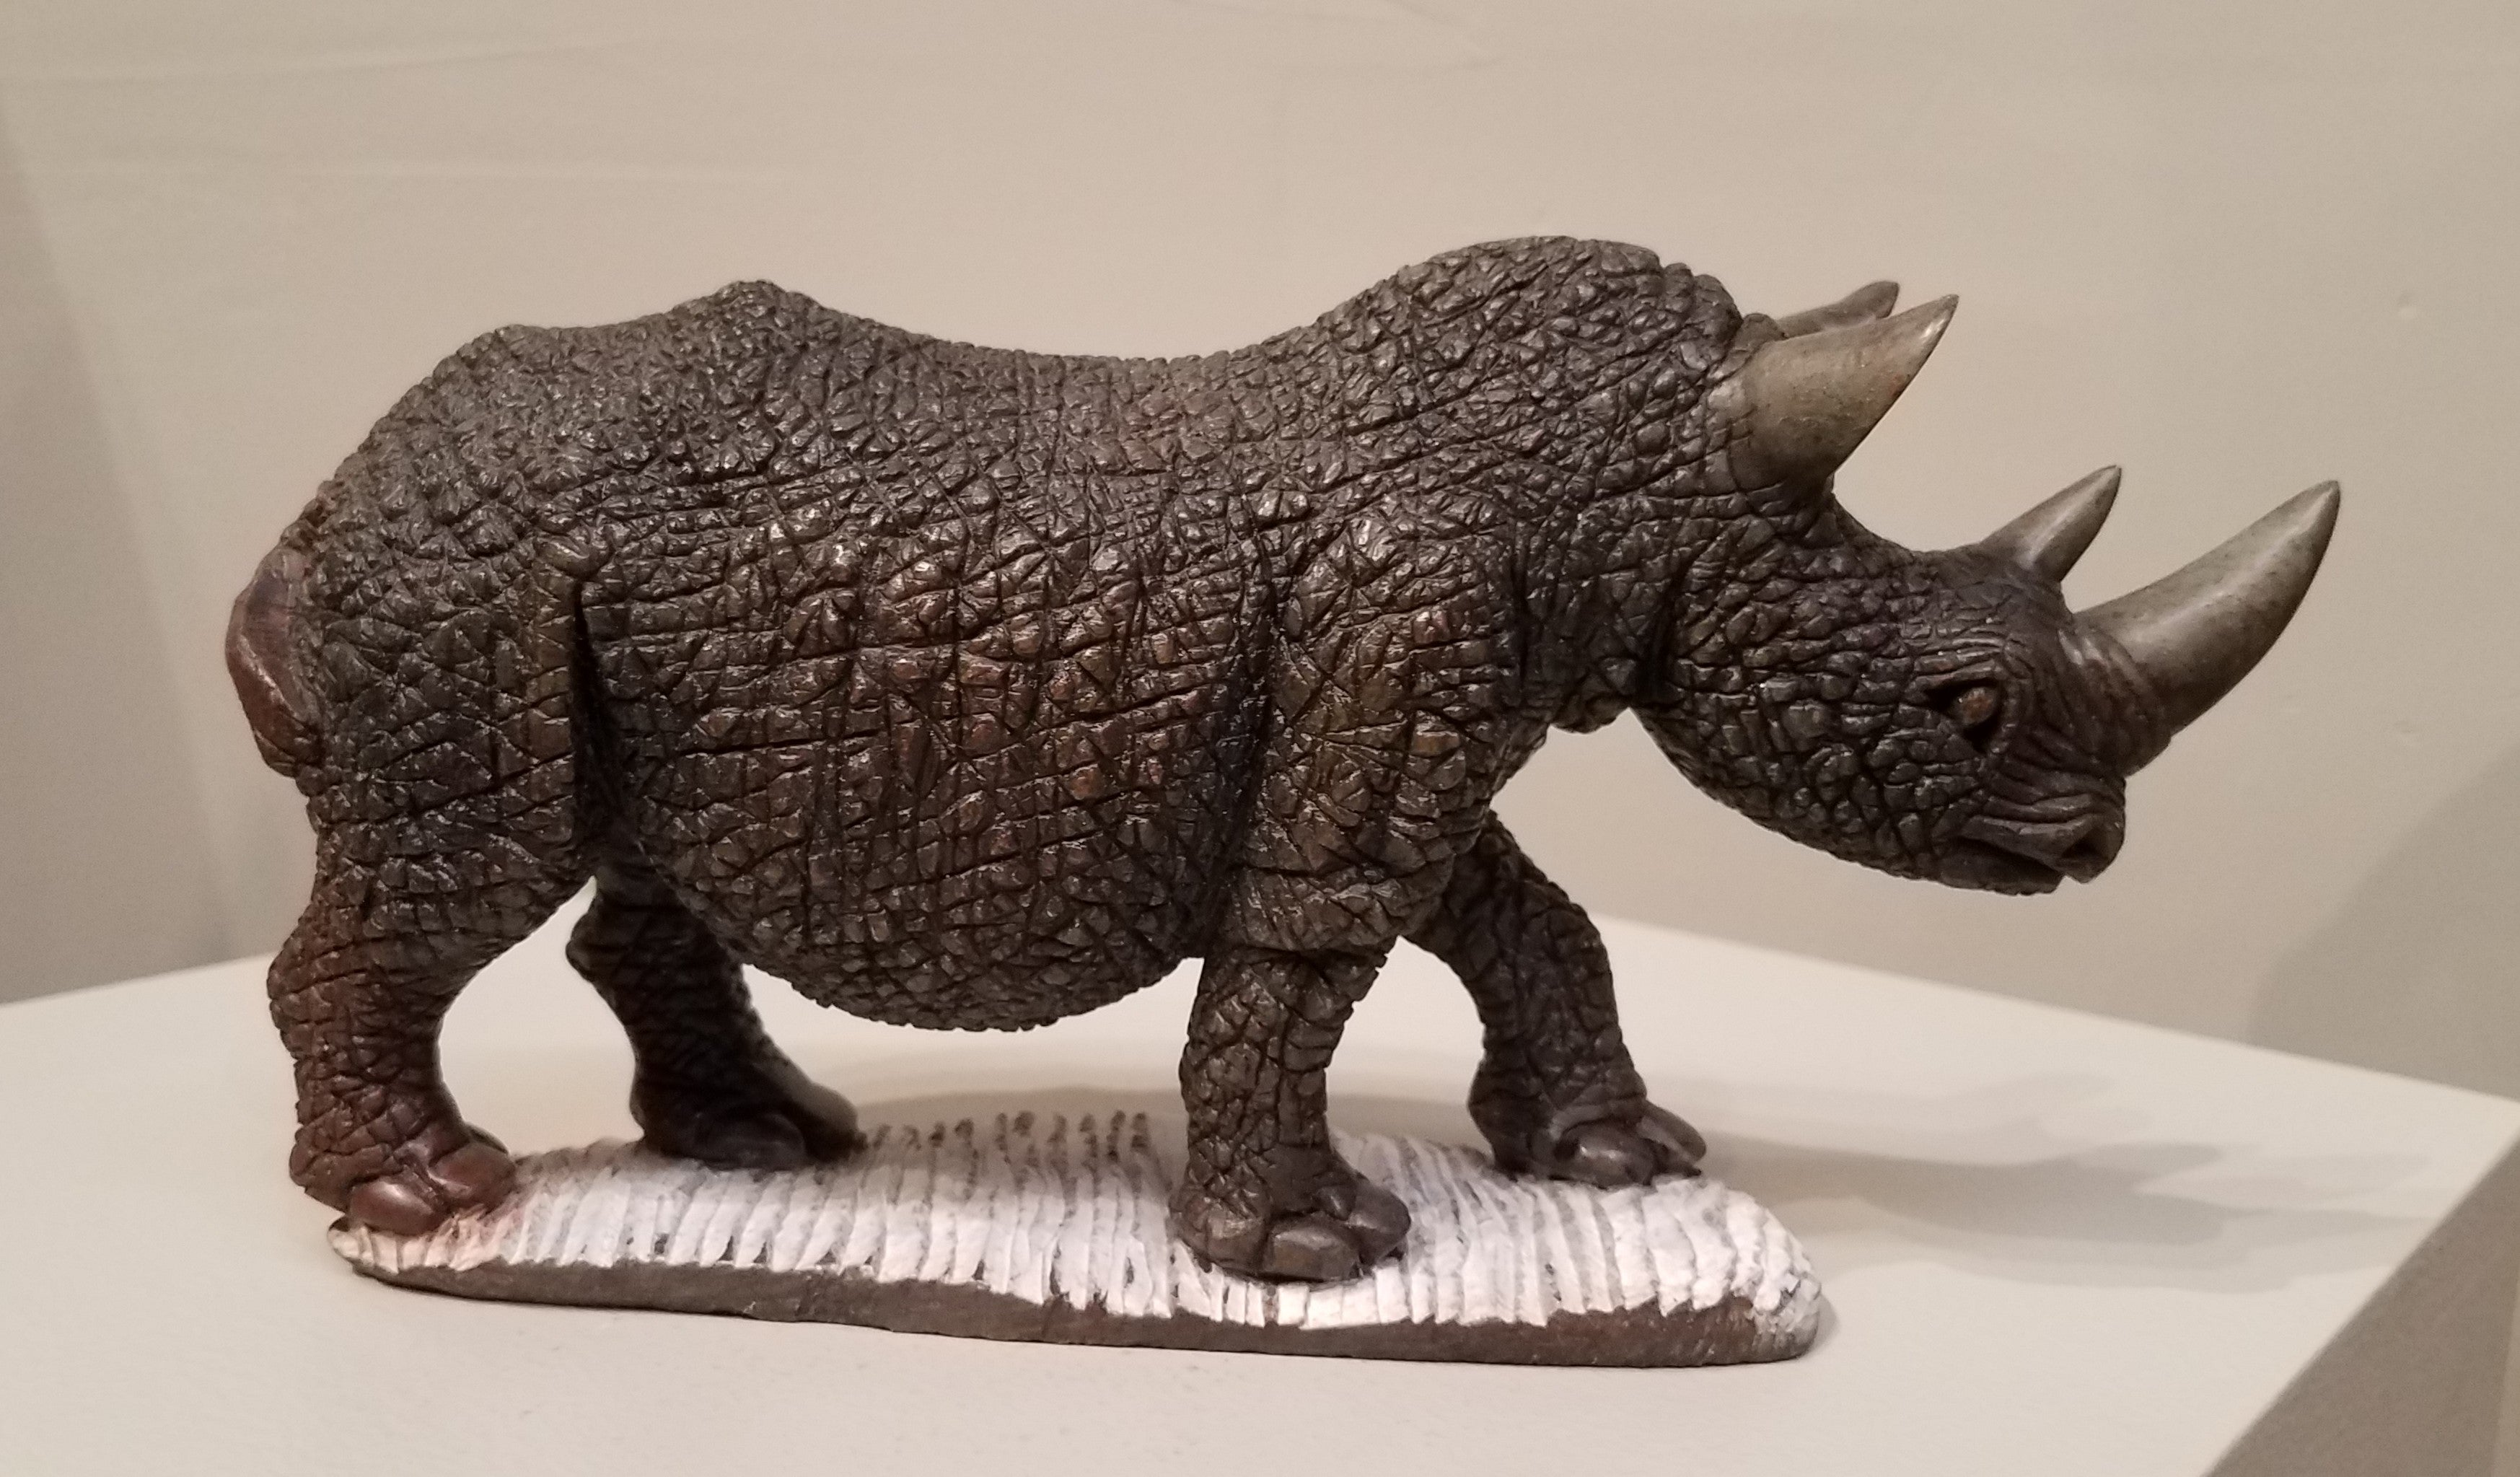 Rhino sculpted from a single piece of serpentine stone, in Zimbabwe. It is a brownish color, with a textured, rough finish for the skin, just like a real rhino skin. The horns, ears, and toes are finely sanded and brought to a shine, and the base that the rhino is walking on is left unpolished, so it's left a greyish/whitish color. The contrast gives the impression that the rhino is walking on a natural, rough ground. The base and the rhino are sculpted from one piece of stone, they are not glued together.